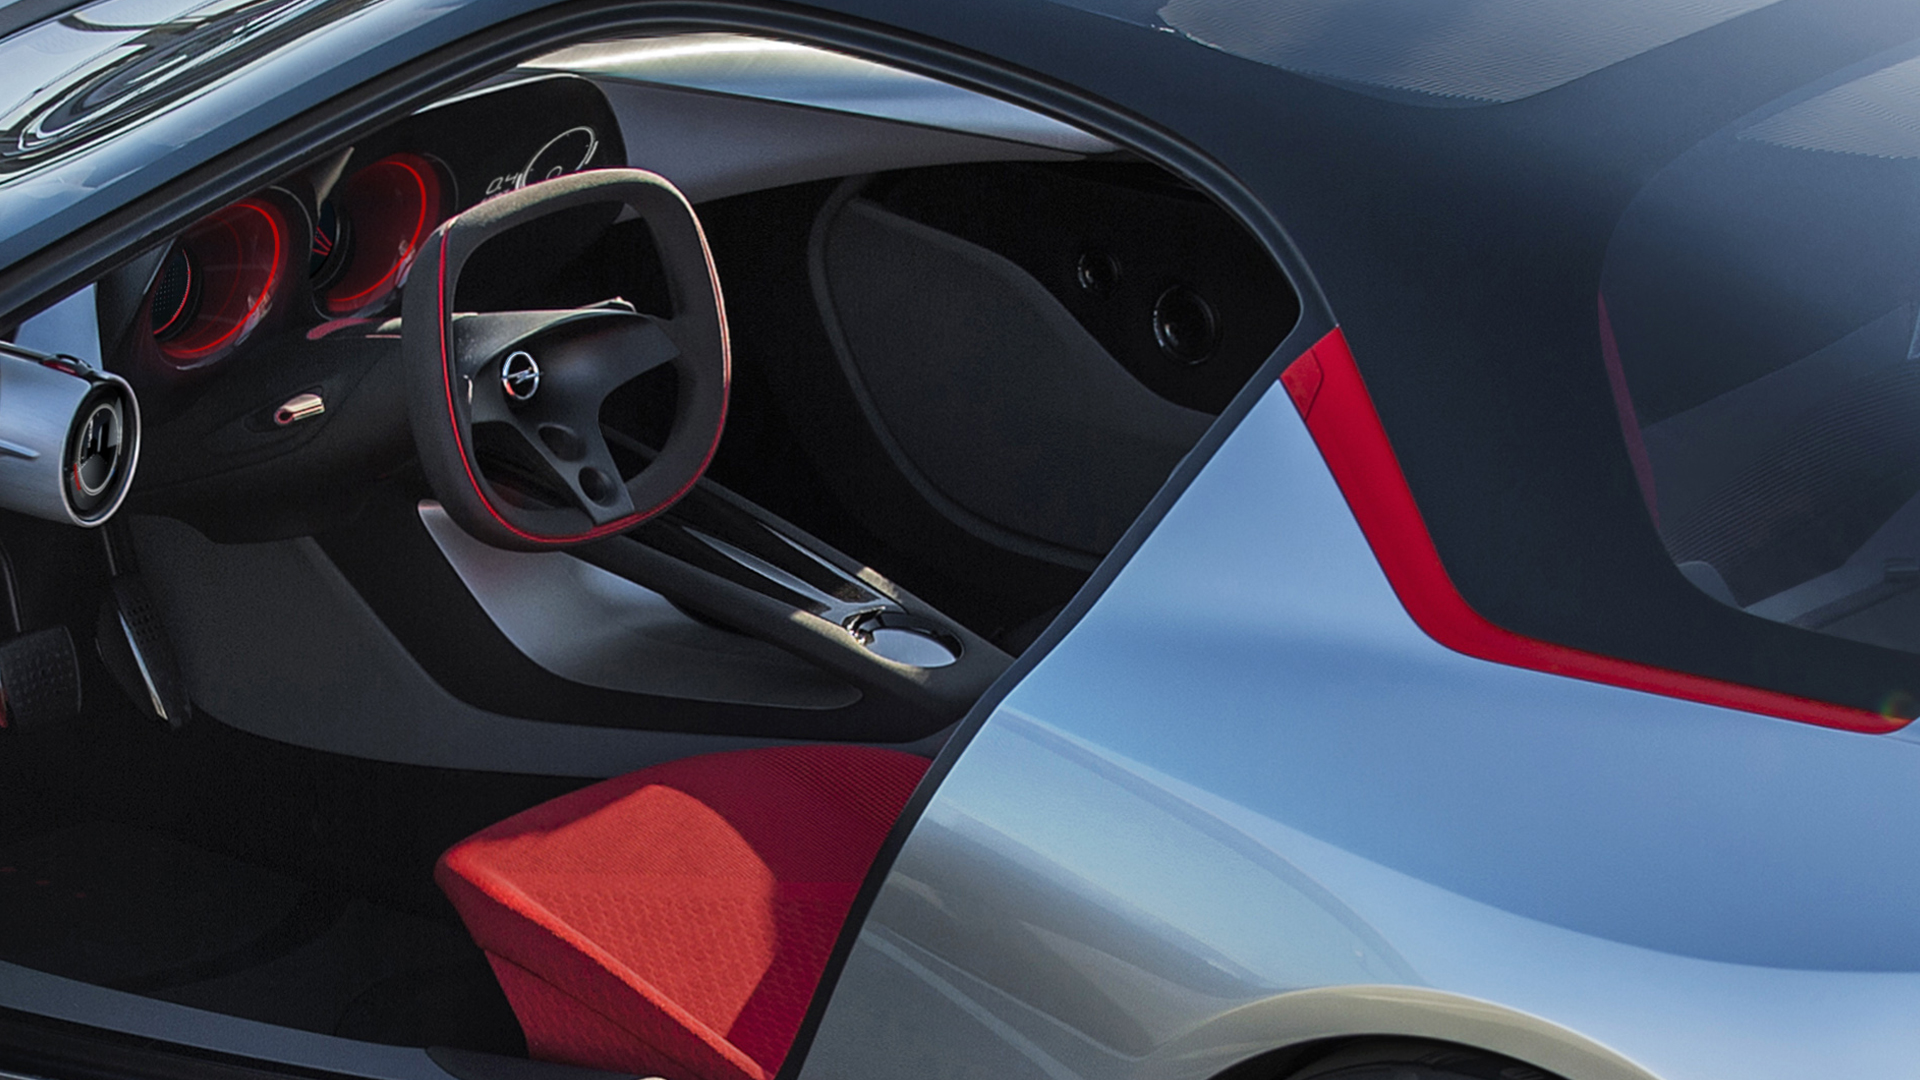 Opel GT Concept 2016 intérieur / interior - zoom - Image - GM Company.